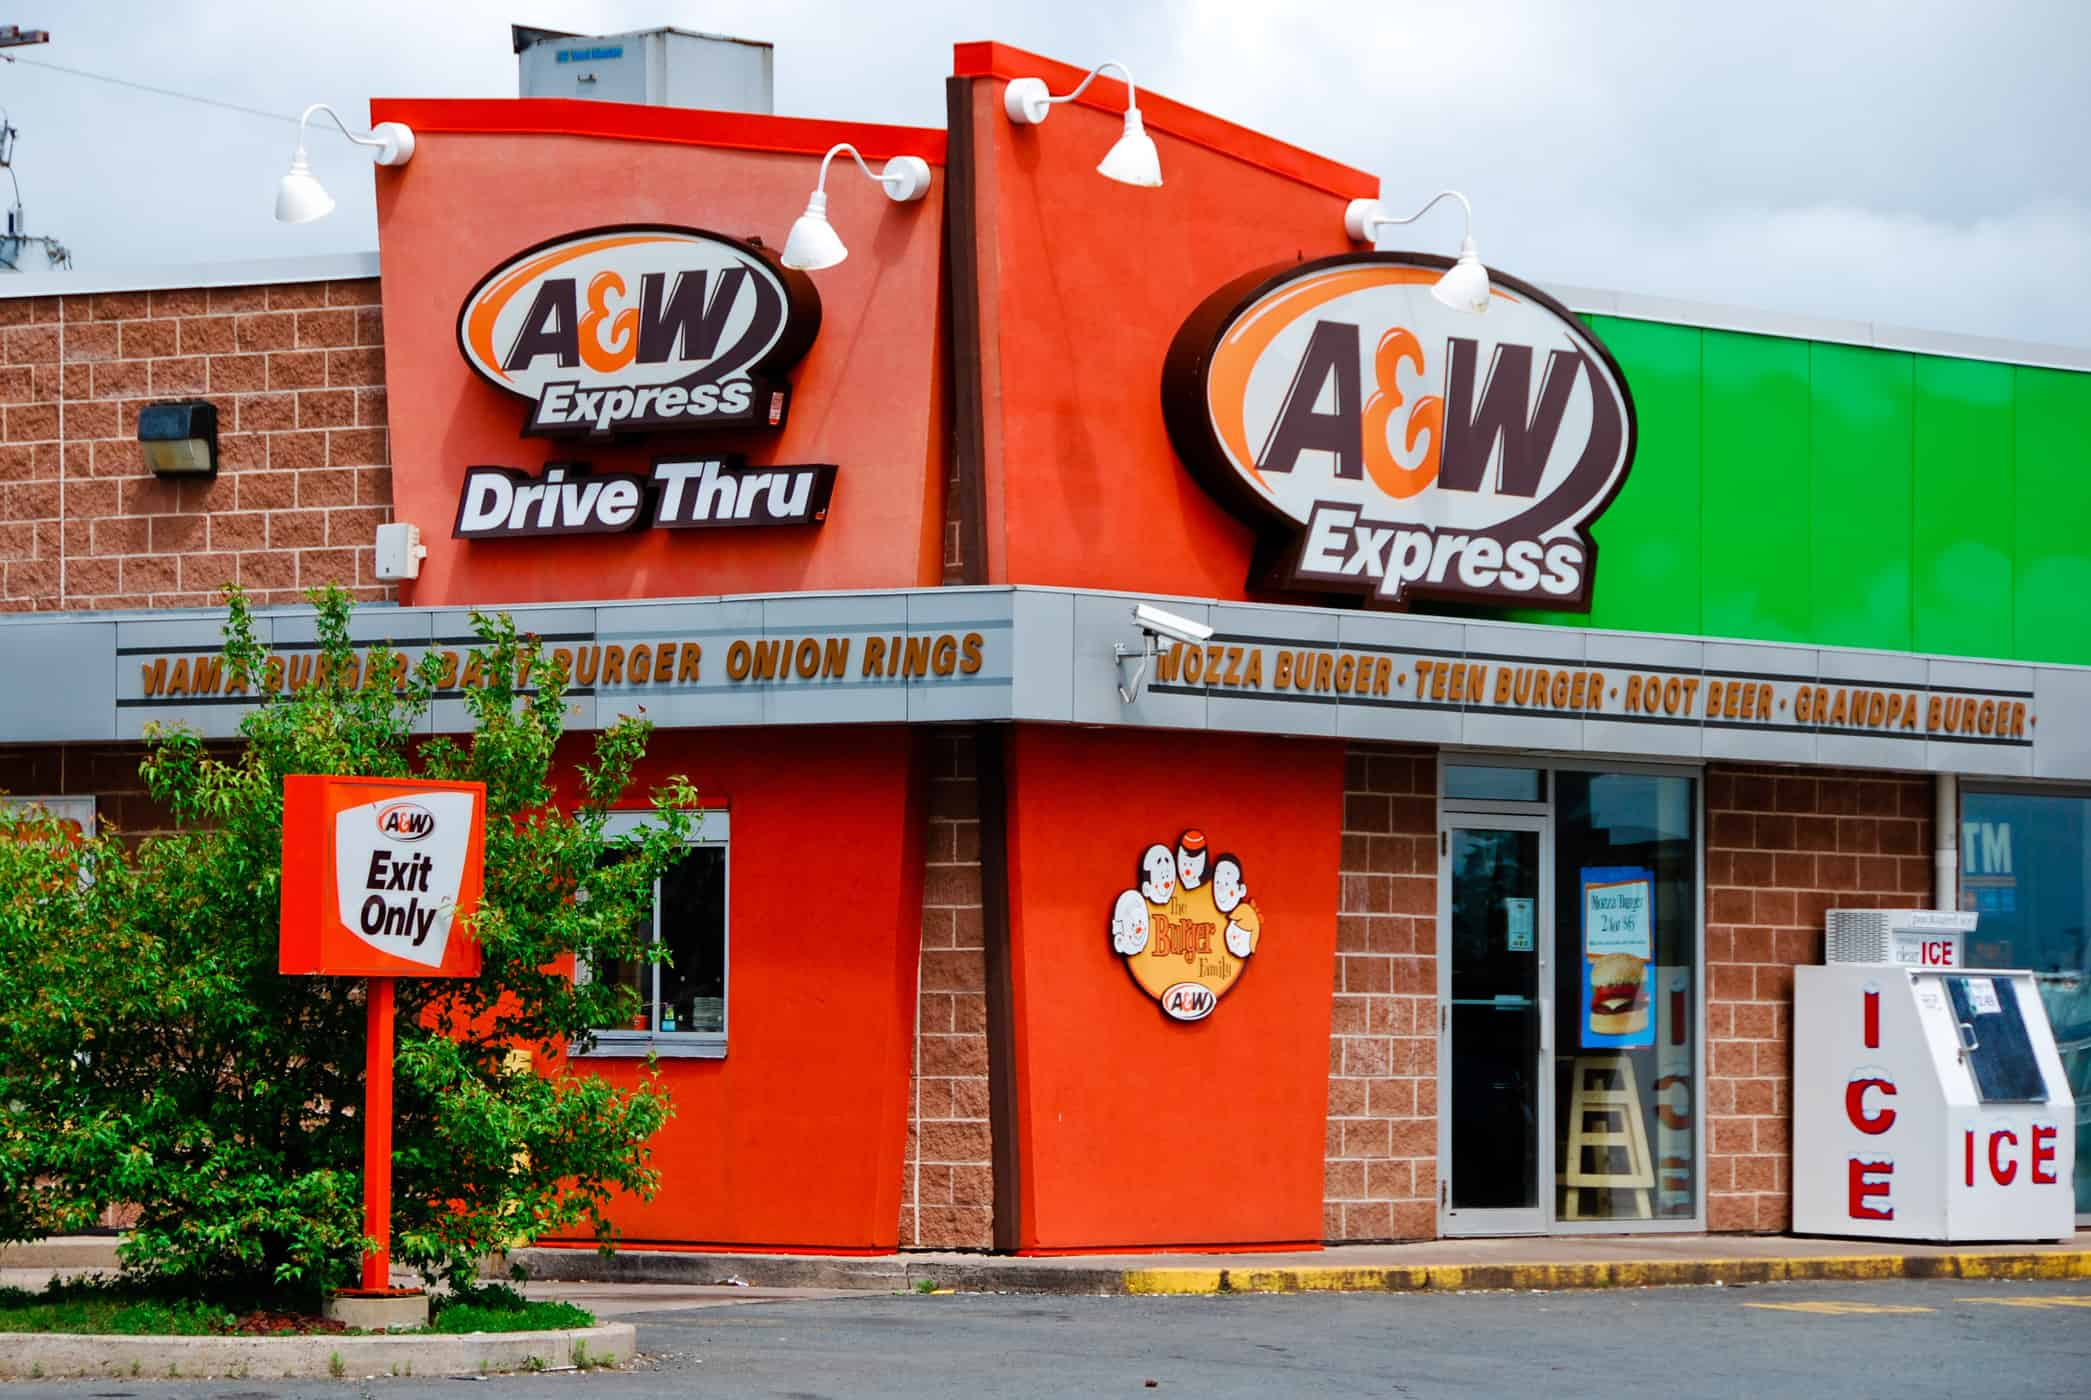 A&W drive thru - Making Fat